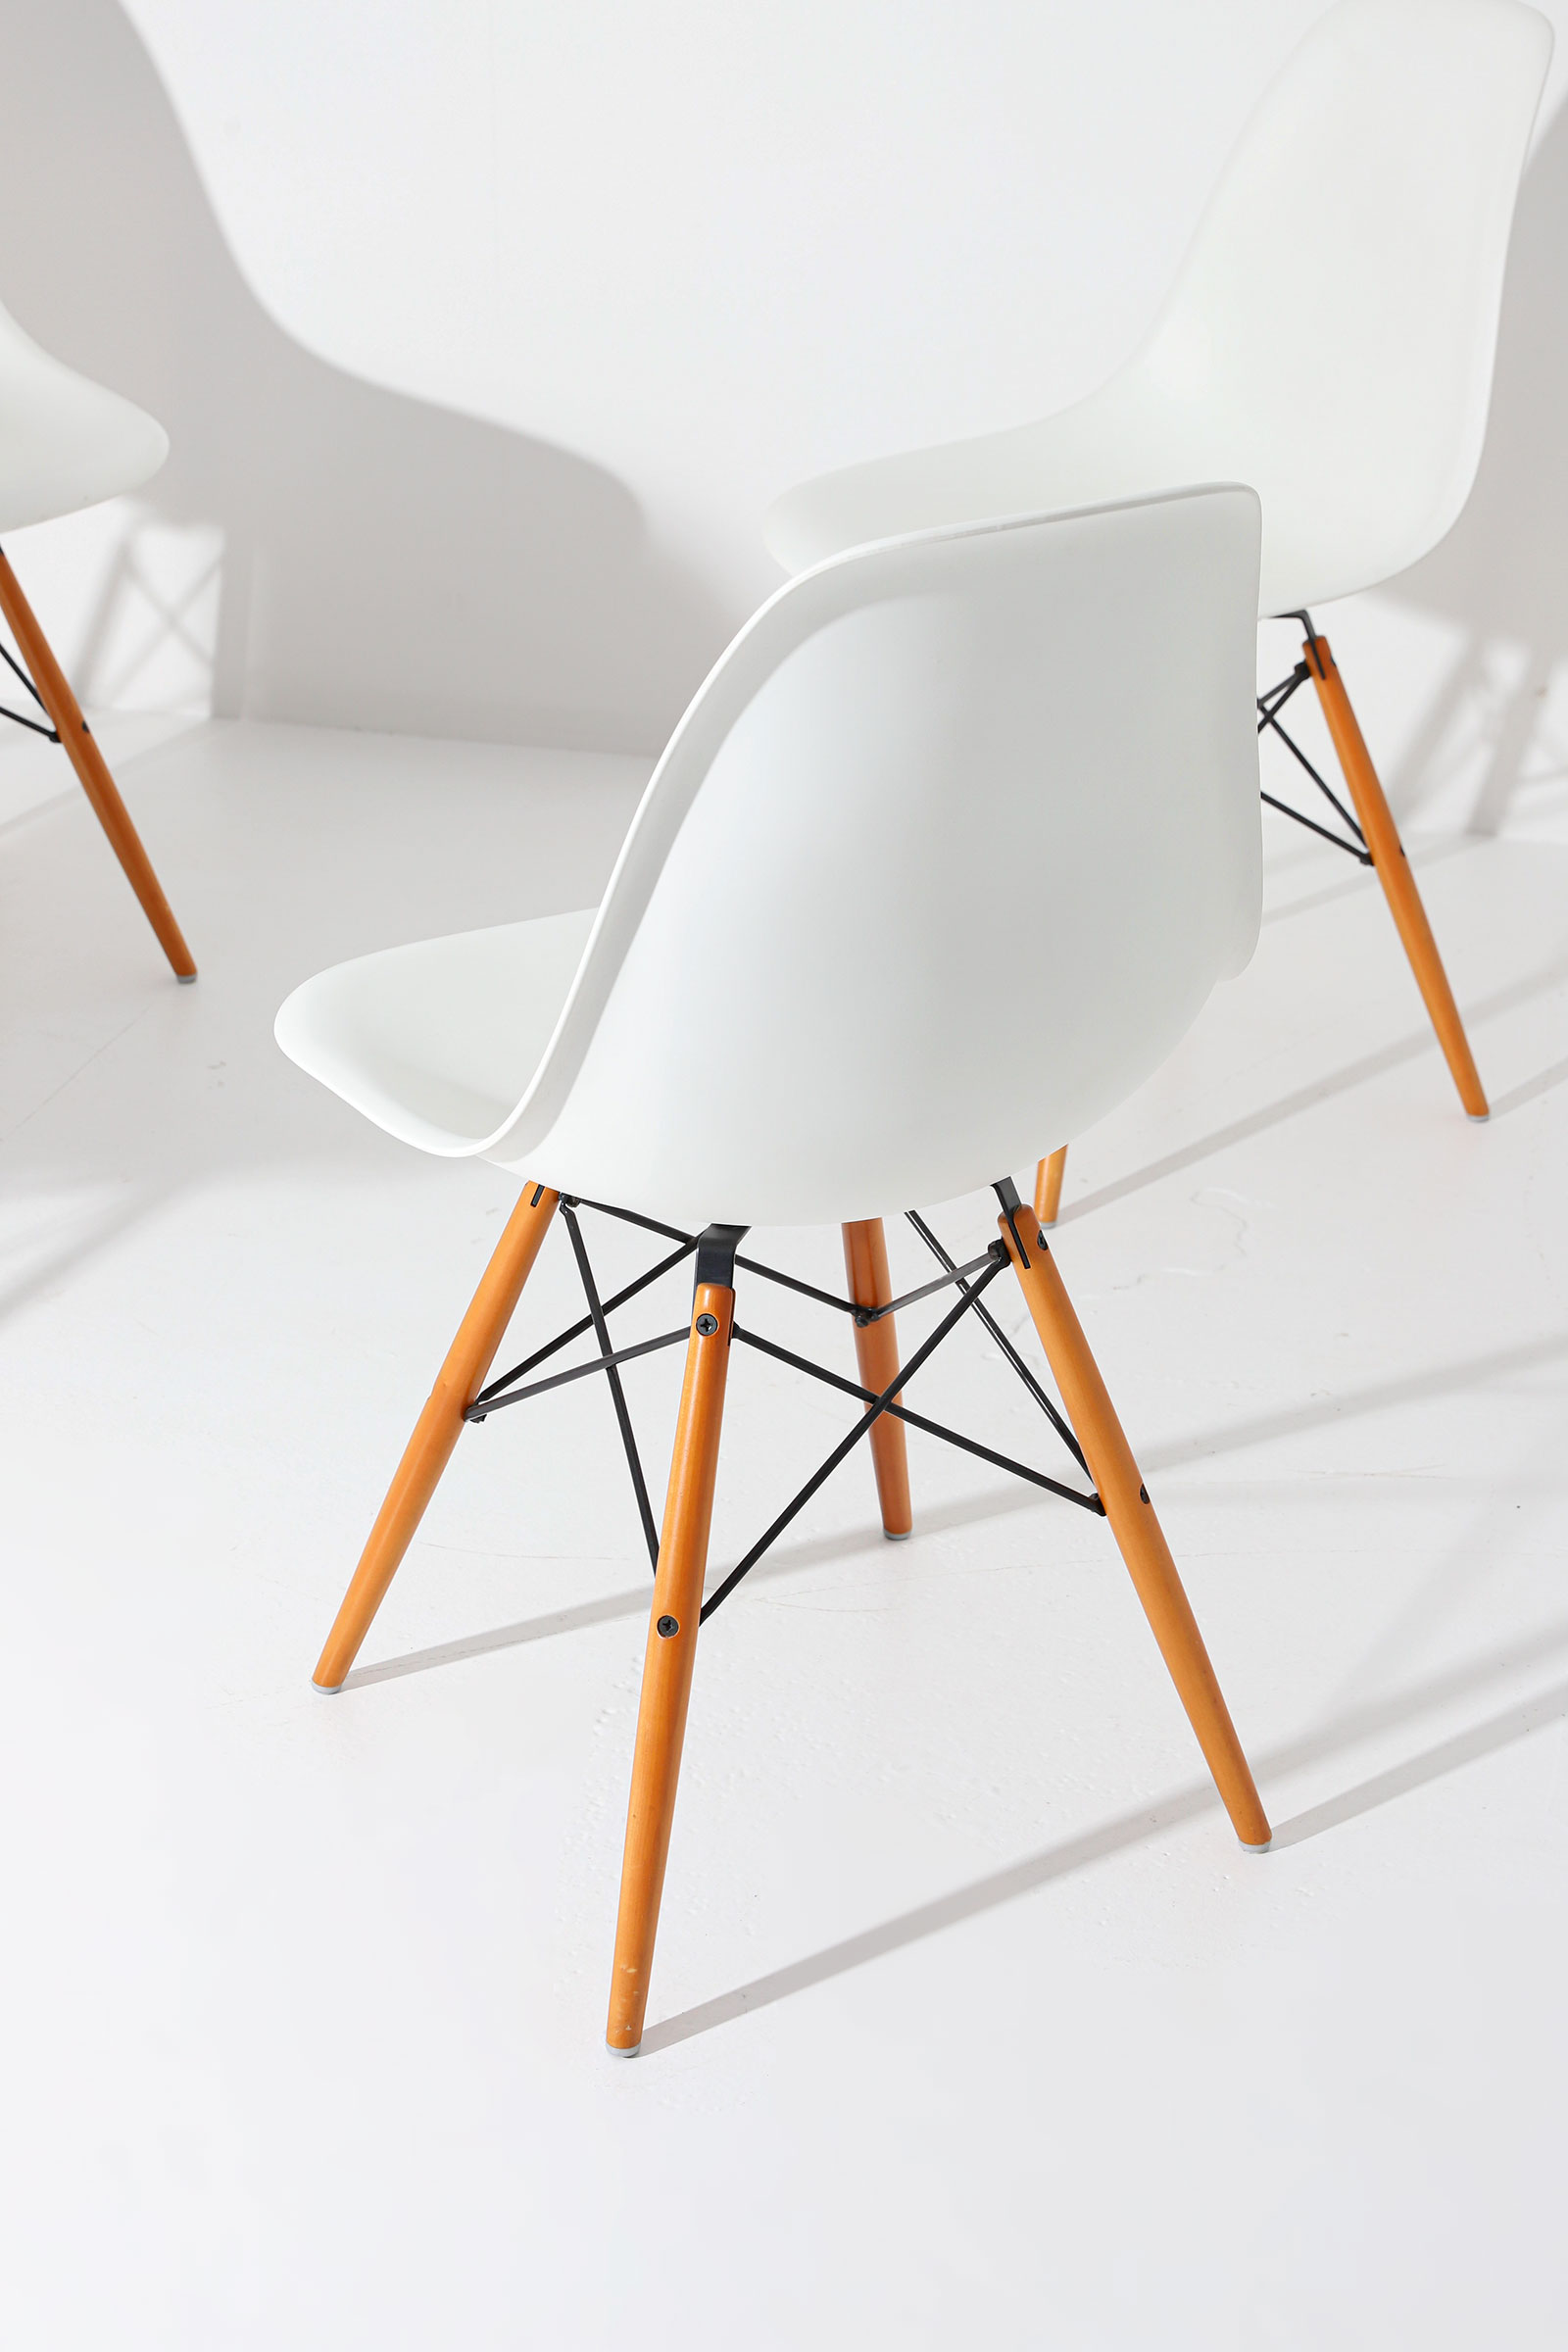 Eames DSW Vitra chairsimage 6